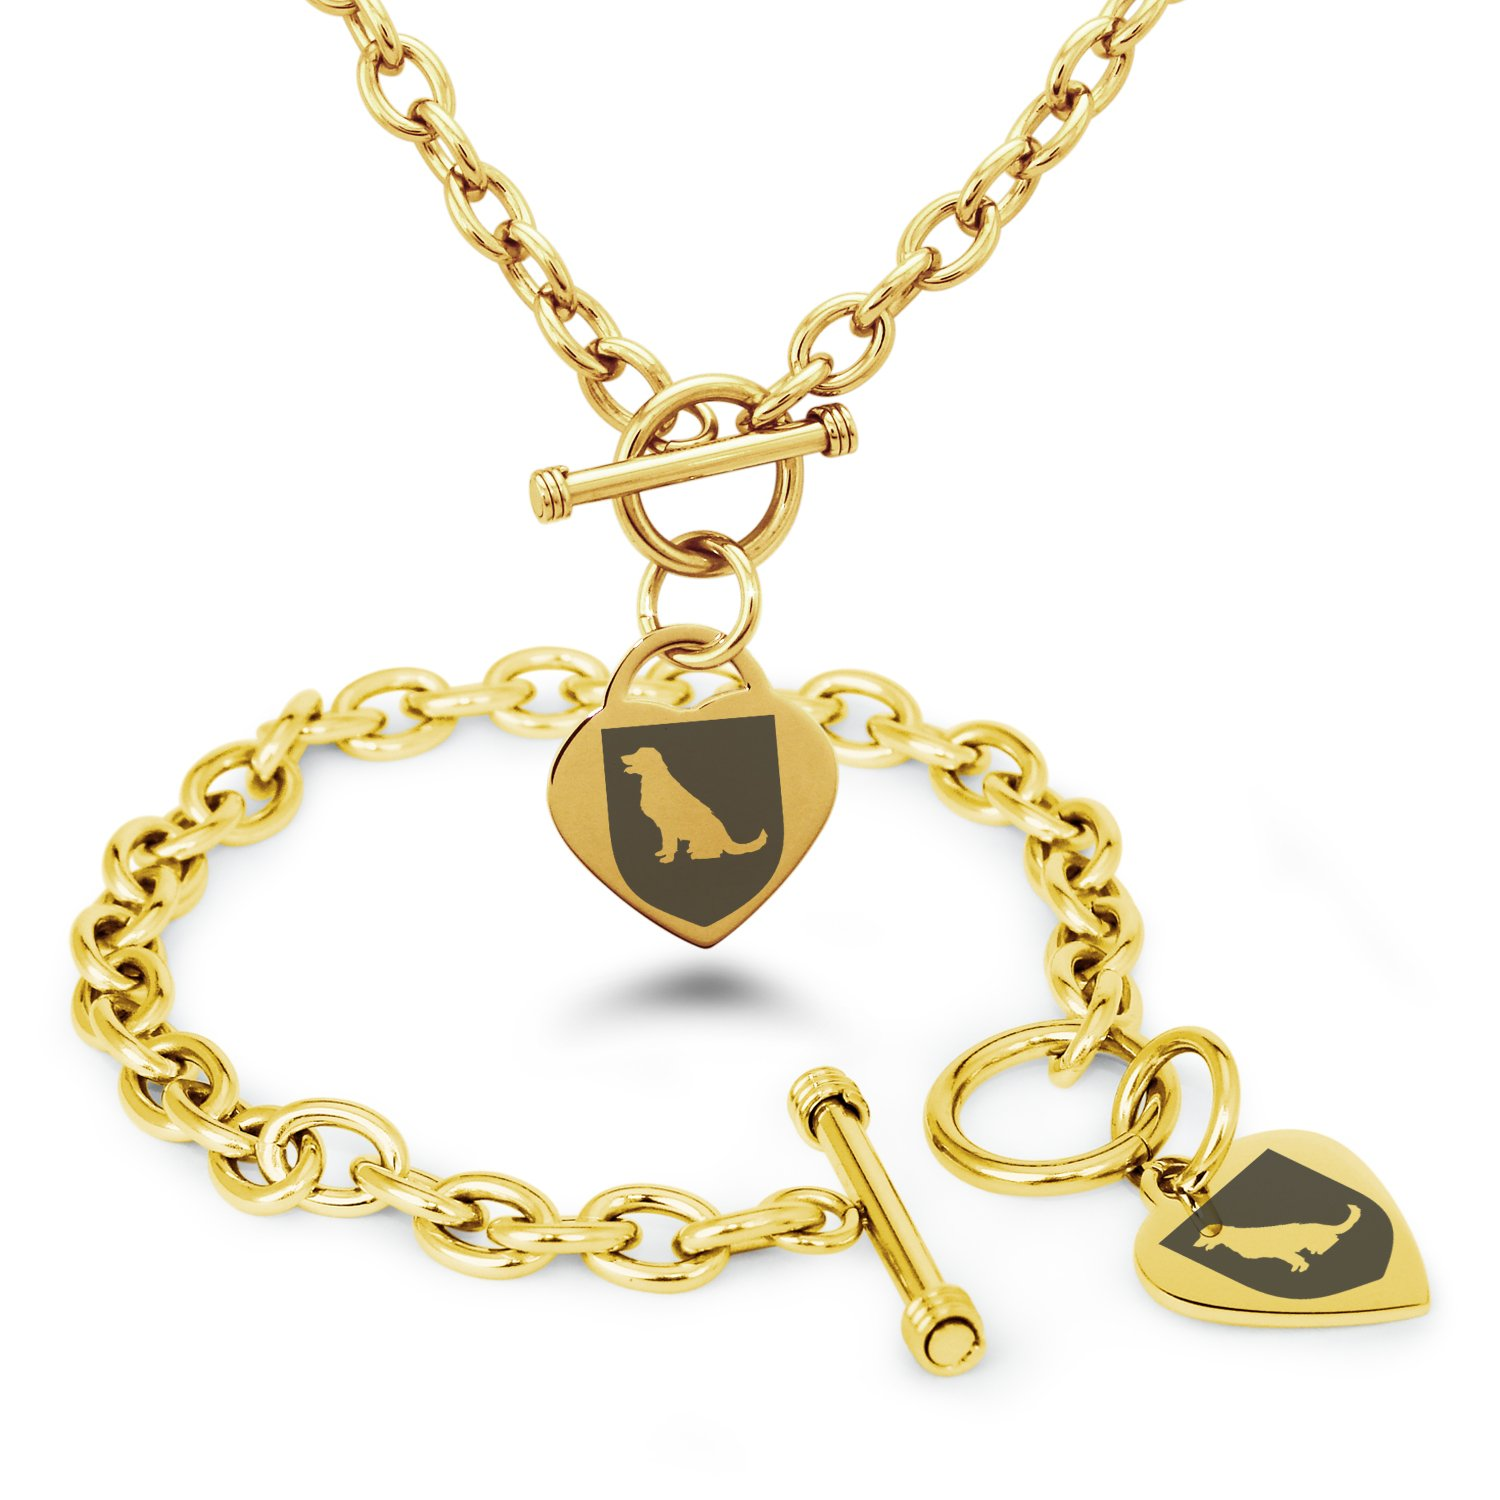 Tioneer Gold Plated Stainless Steel Dog Loyalty Coat of Arms Shield Symbols Heart Charm, Bracelet & Necklace Set